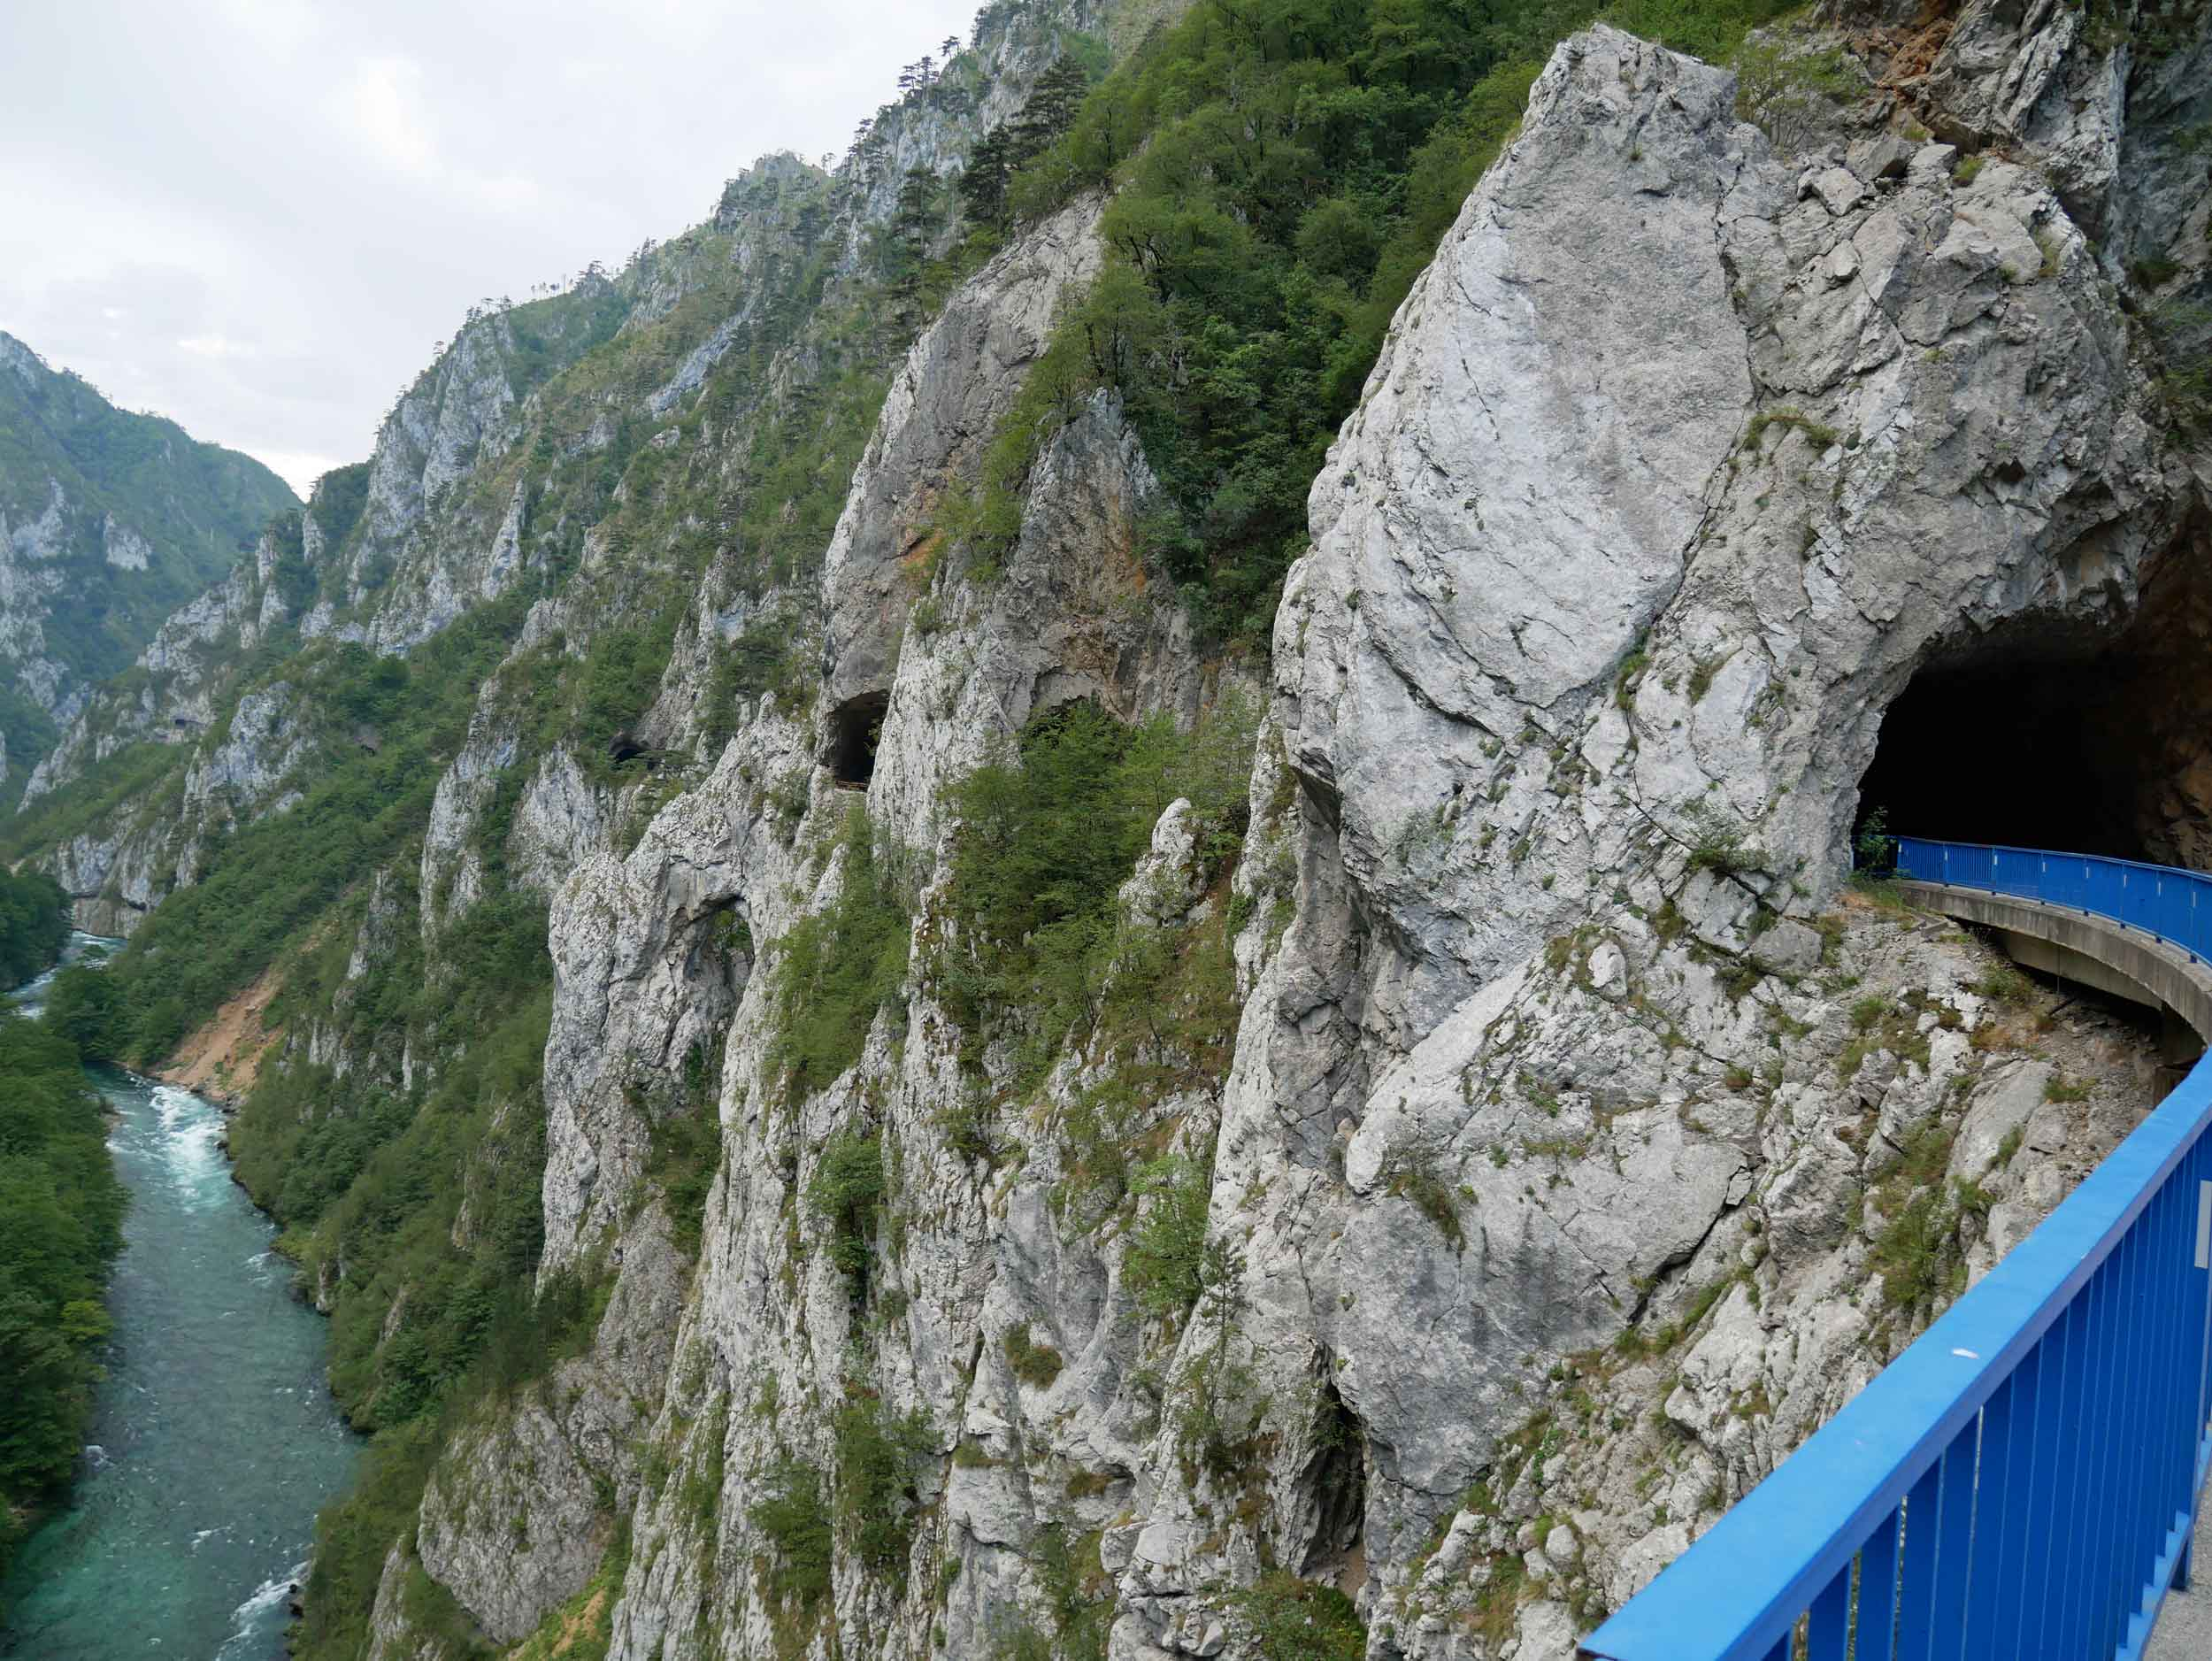 The twisting roads passed through numerous tunnels, rough and unfinished, carved from the mountainside.